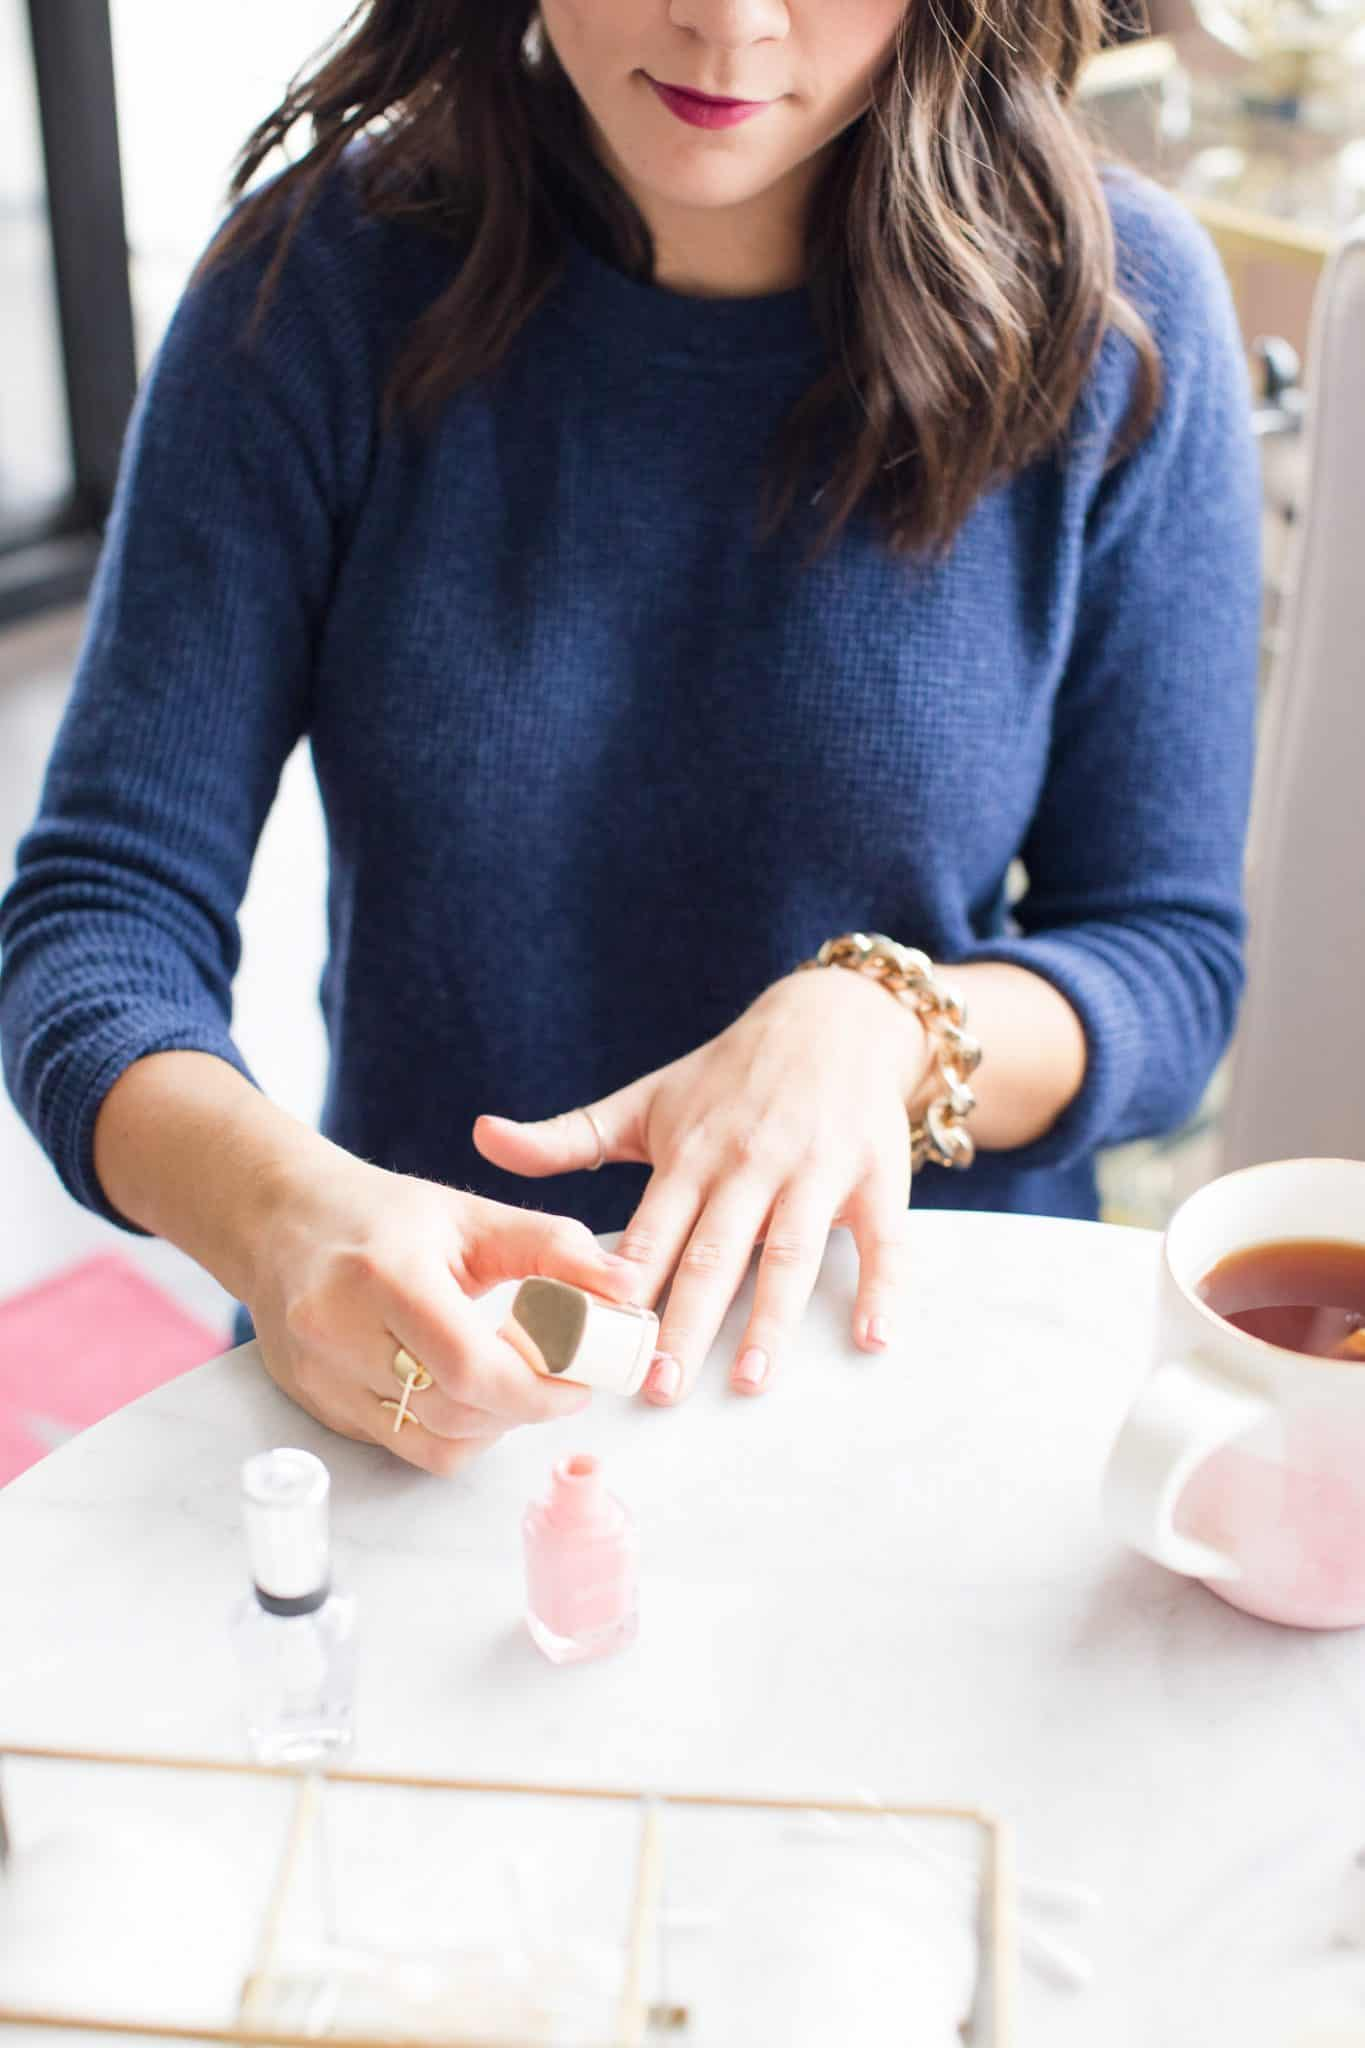 Jessica Camerata paints her nails at home